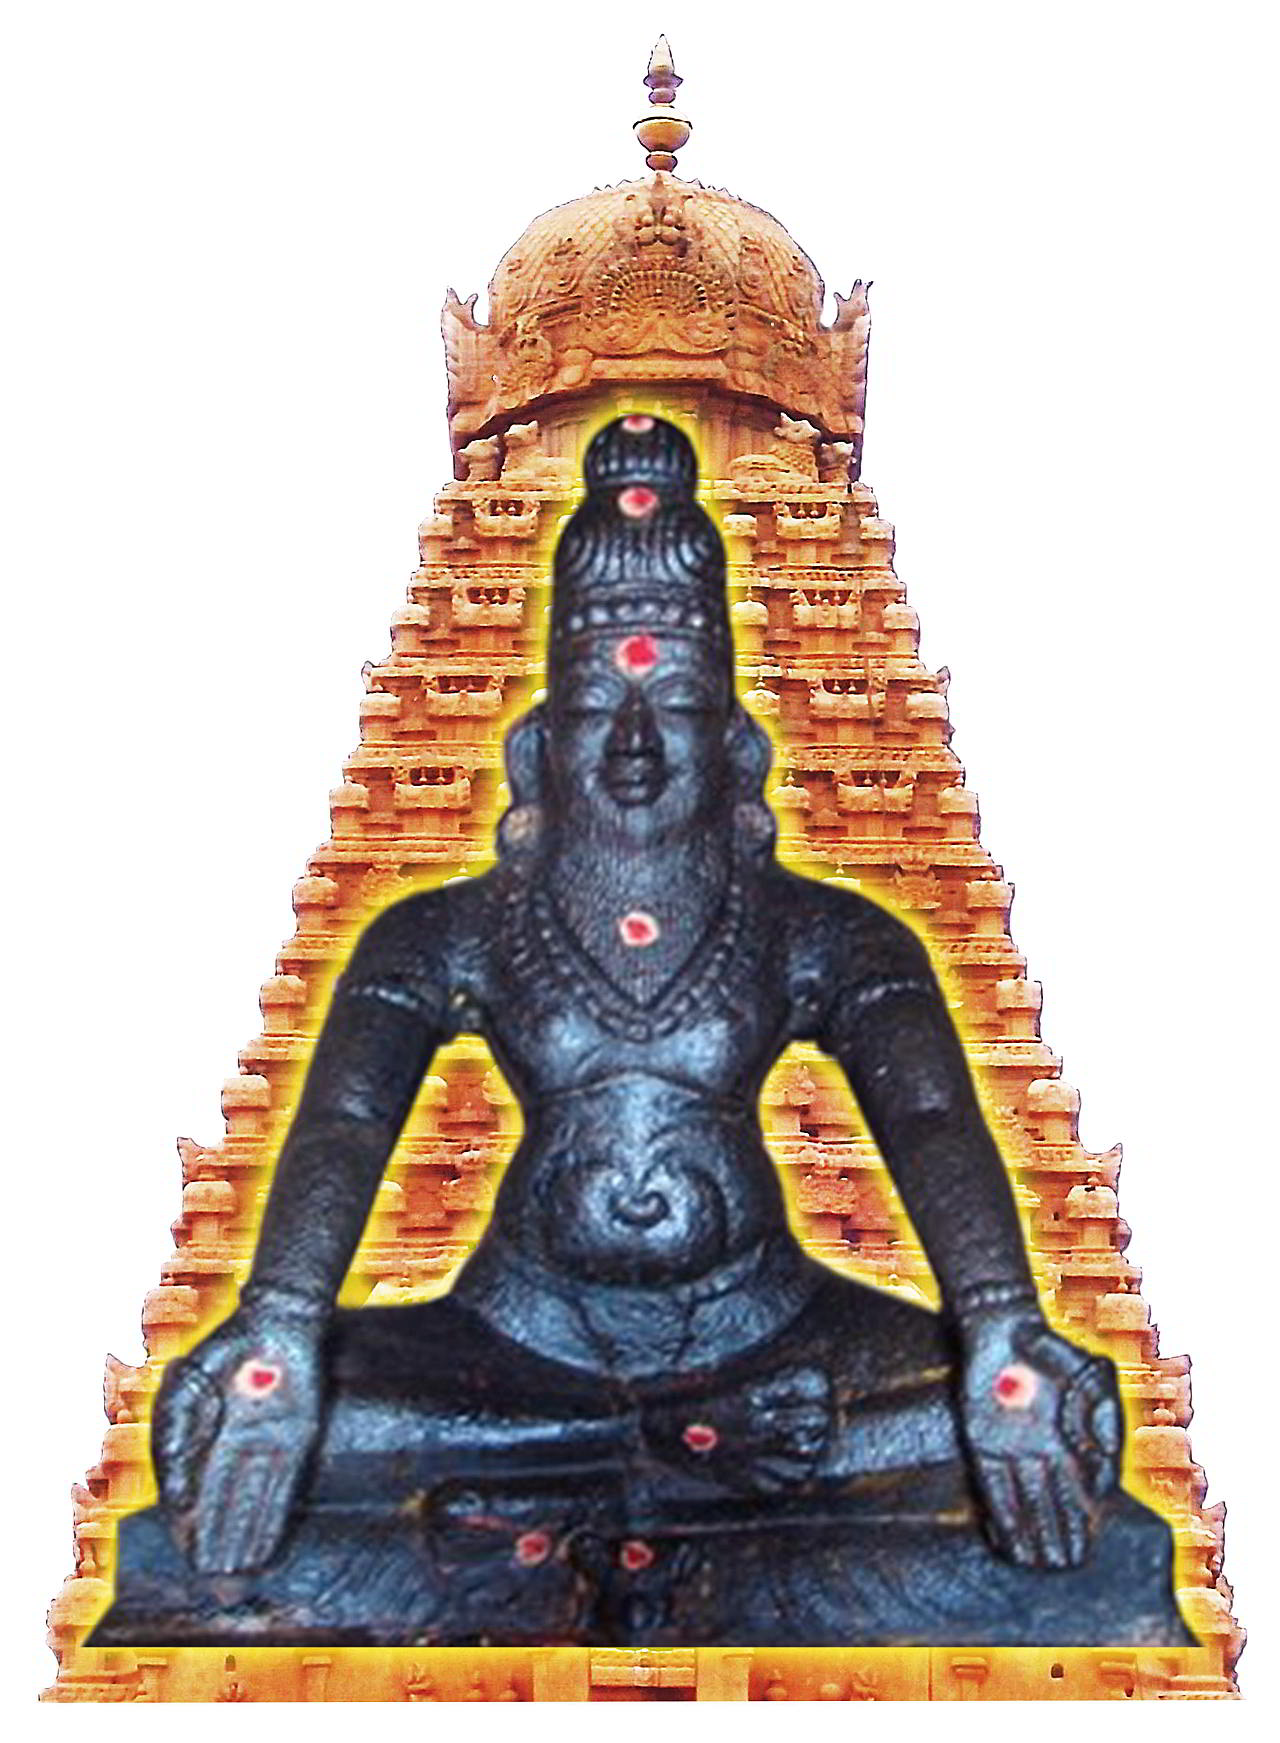 11th Pathinensiddhar Peedaathipathi